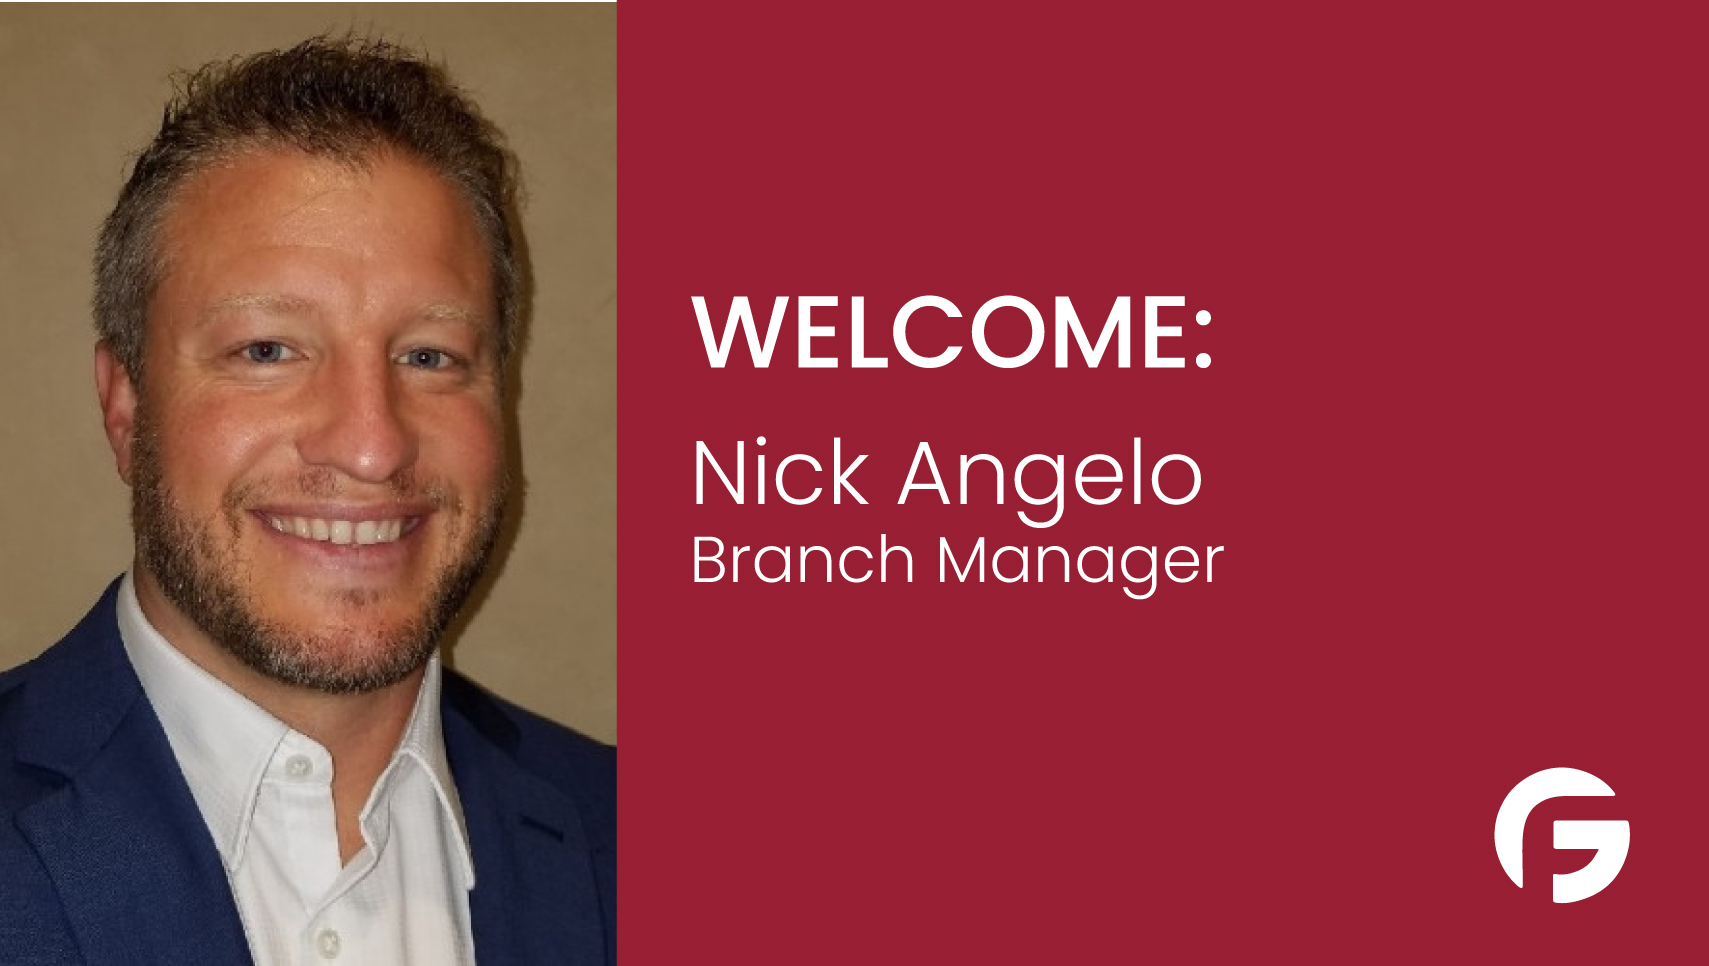 Nick Angelo Branch Manager serving Ohio